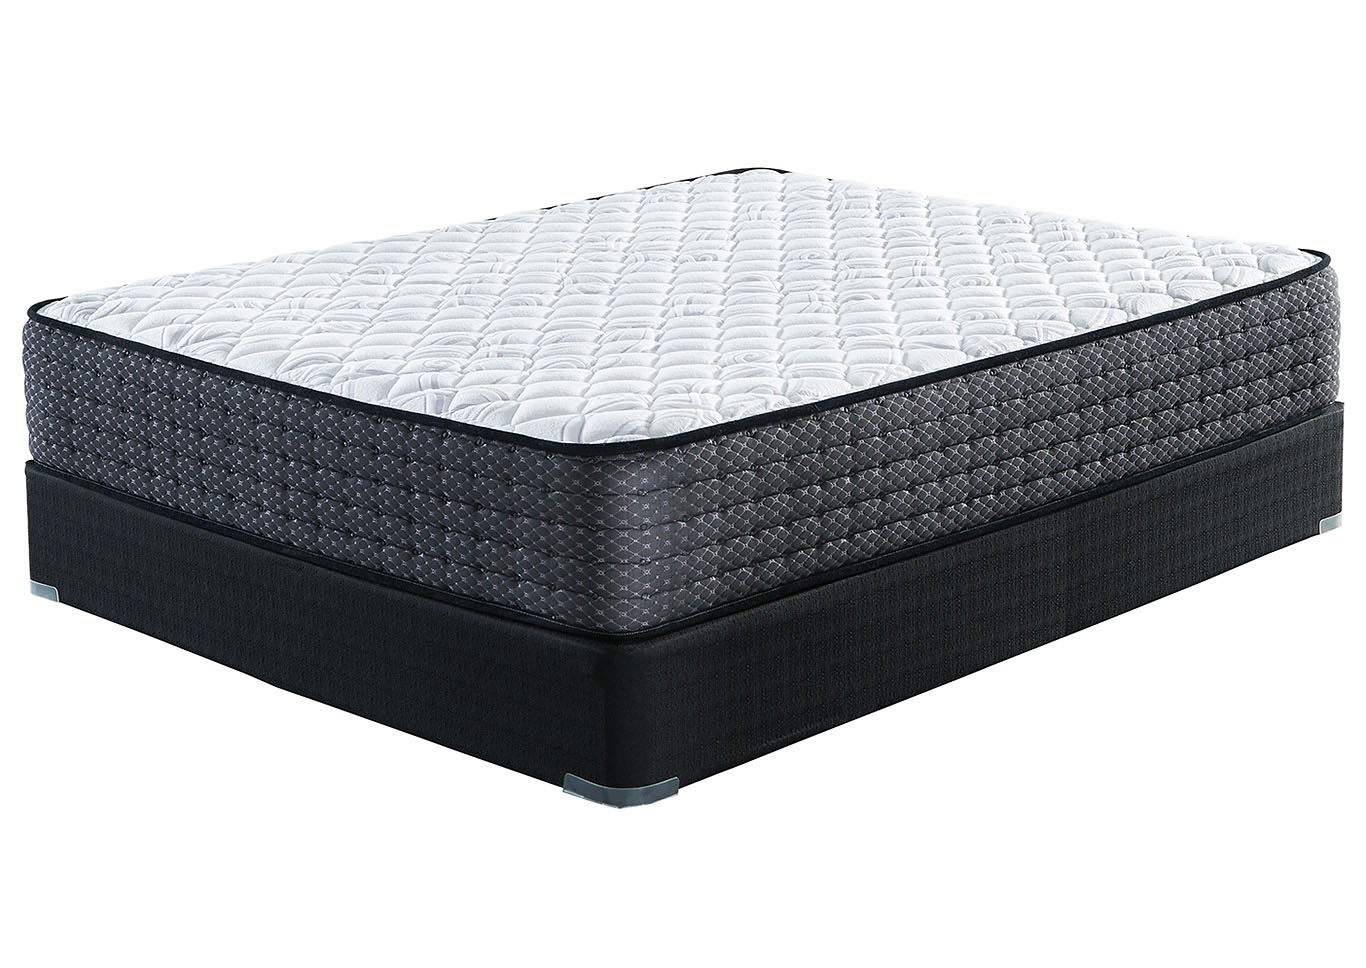 Limited Edition White Firm Full Mattress w/Foundation,Sierra Sleep by Ashley